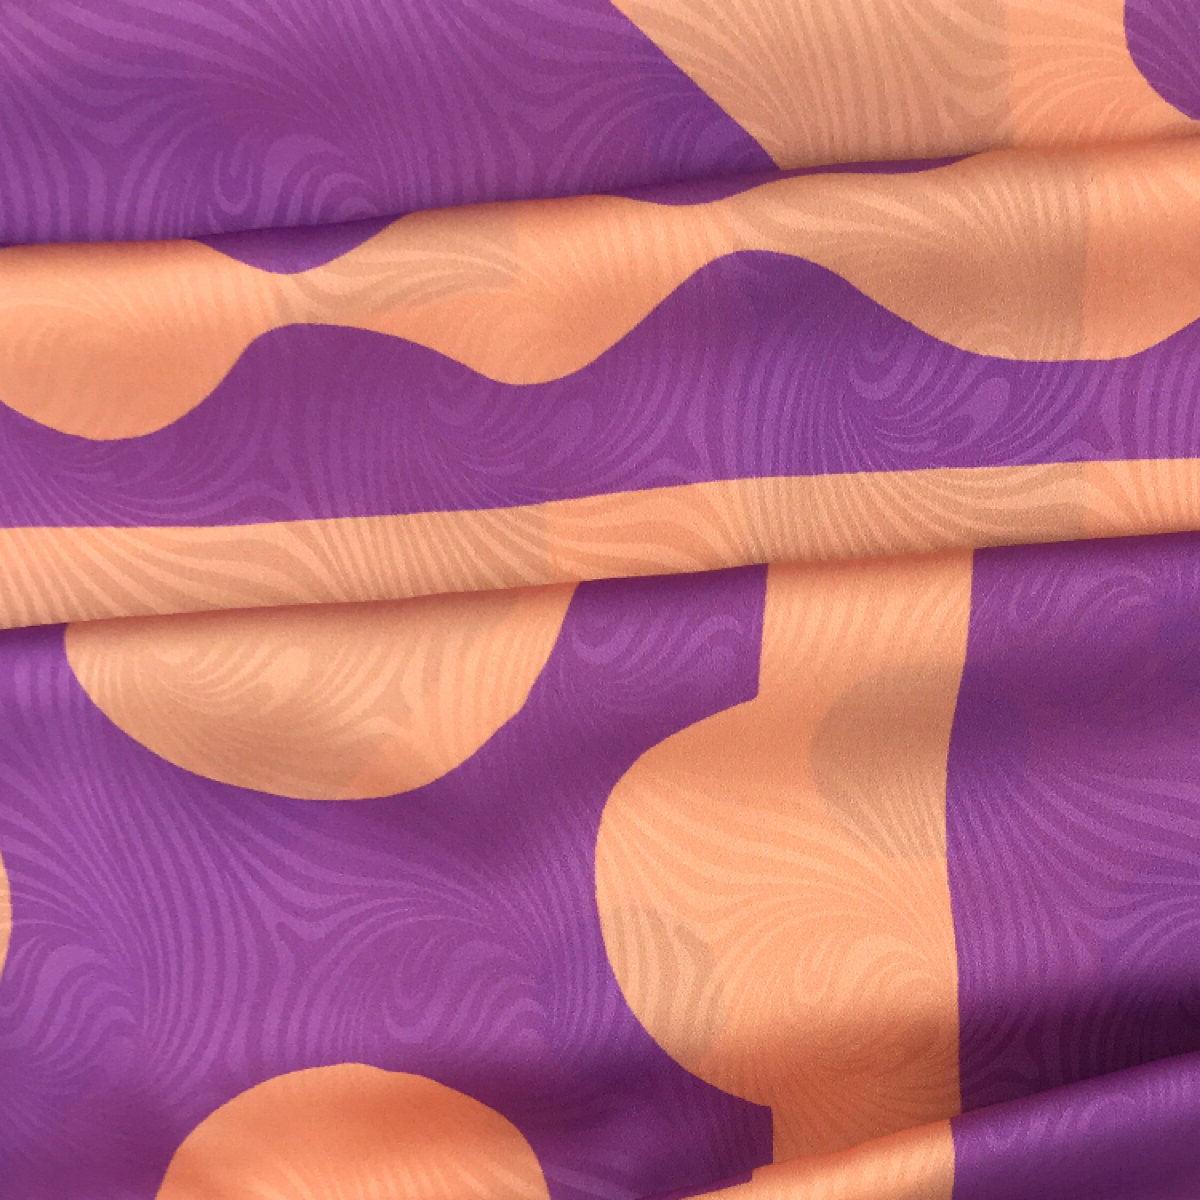 Abstract Shape Orange and Purple Printed Woven Textile by Industry by Clerici Tessuto